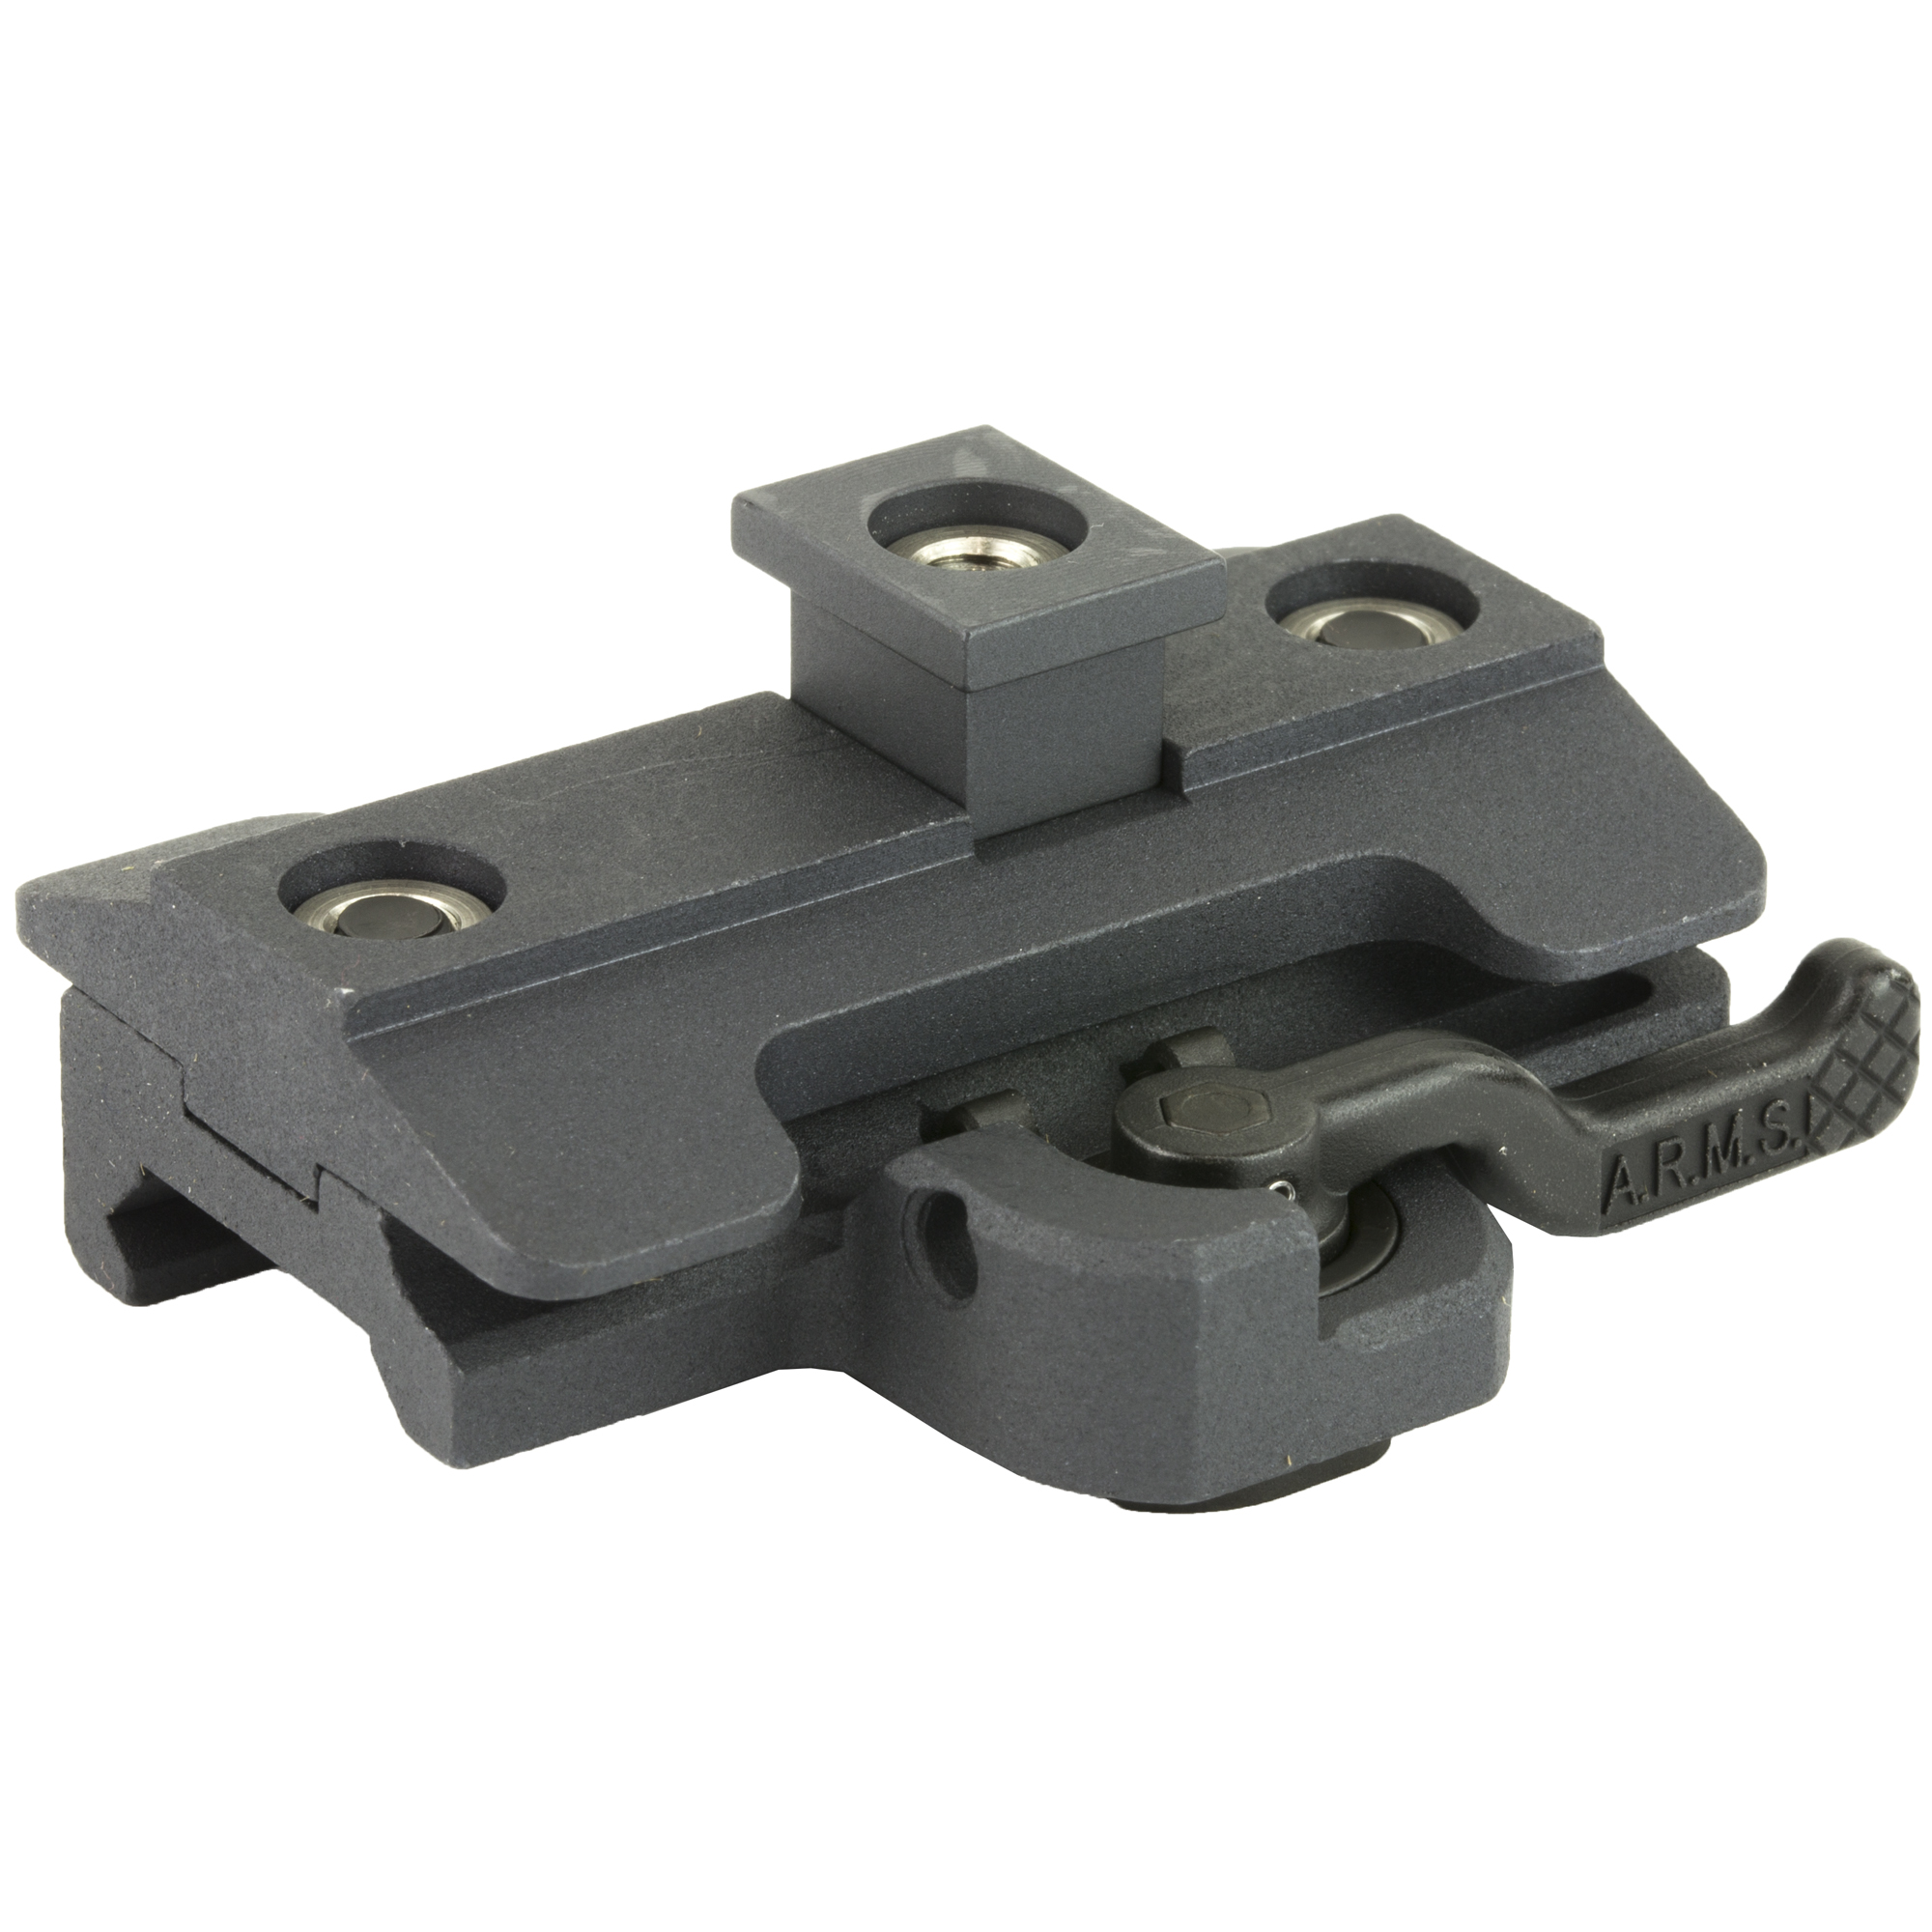 The A.R.M.S. #32 Throw Lever Adapter for the Harris-type Bi-Pod is designed to allow the fastest attach and detachability possible. There is no gunsmithing required. You simply remove the adjustment screw assembly and install the A.R.M.S. Throw Lever assembly. It is designed to allow the lever to be attached to either side of the bipod for a light weight low profile attachment. Made in the USA.